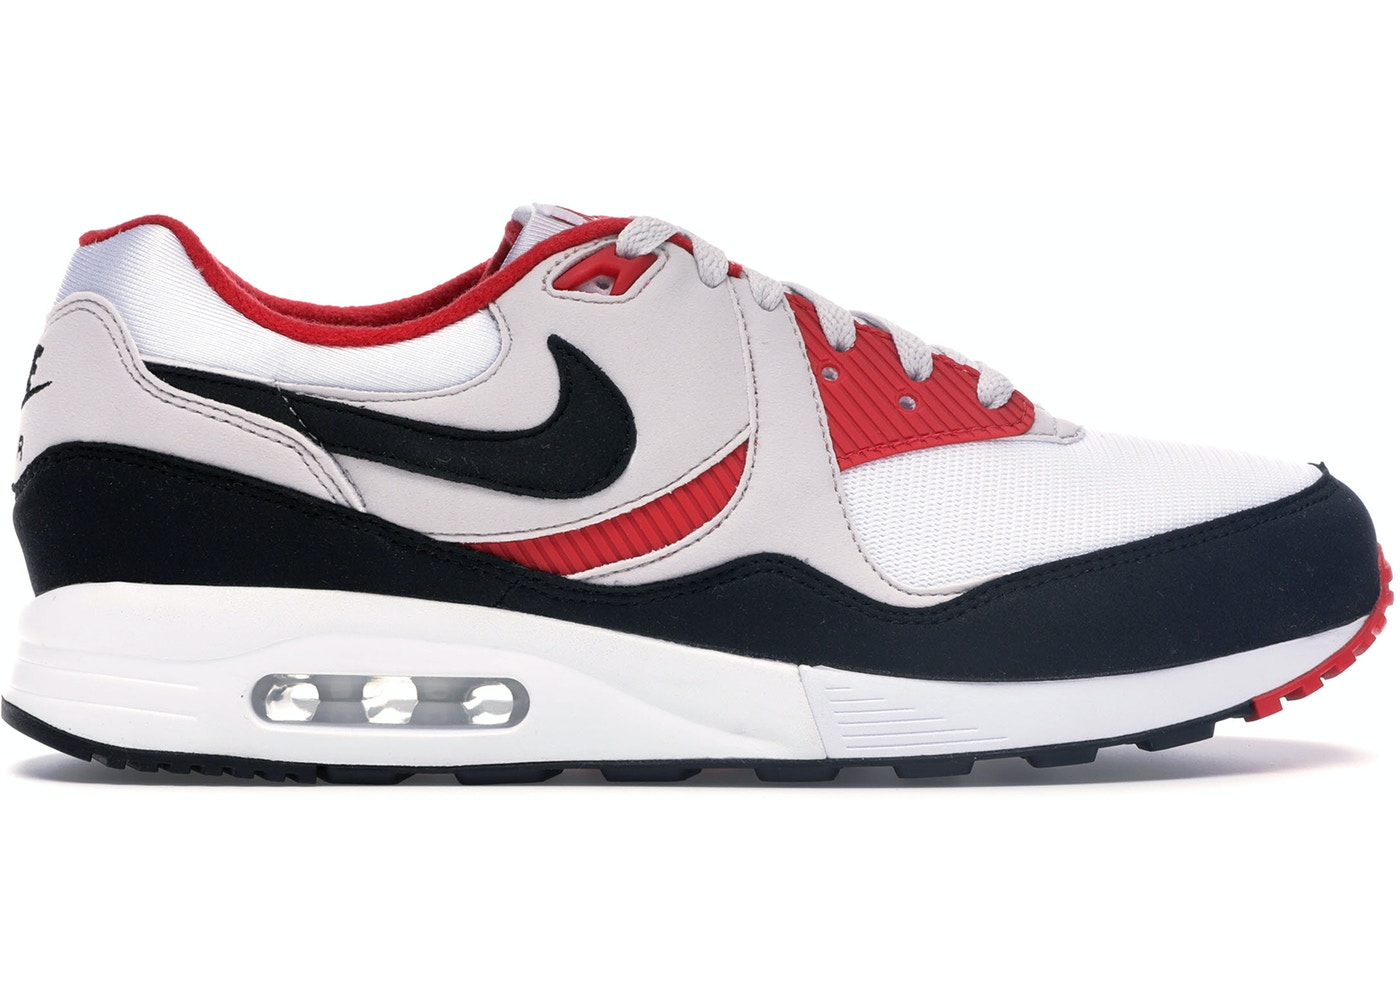 bfb05175 Air Max Light White Black Grey Red - AO8285-101